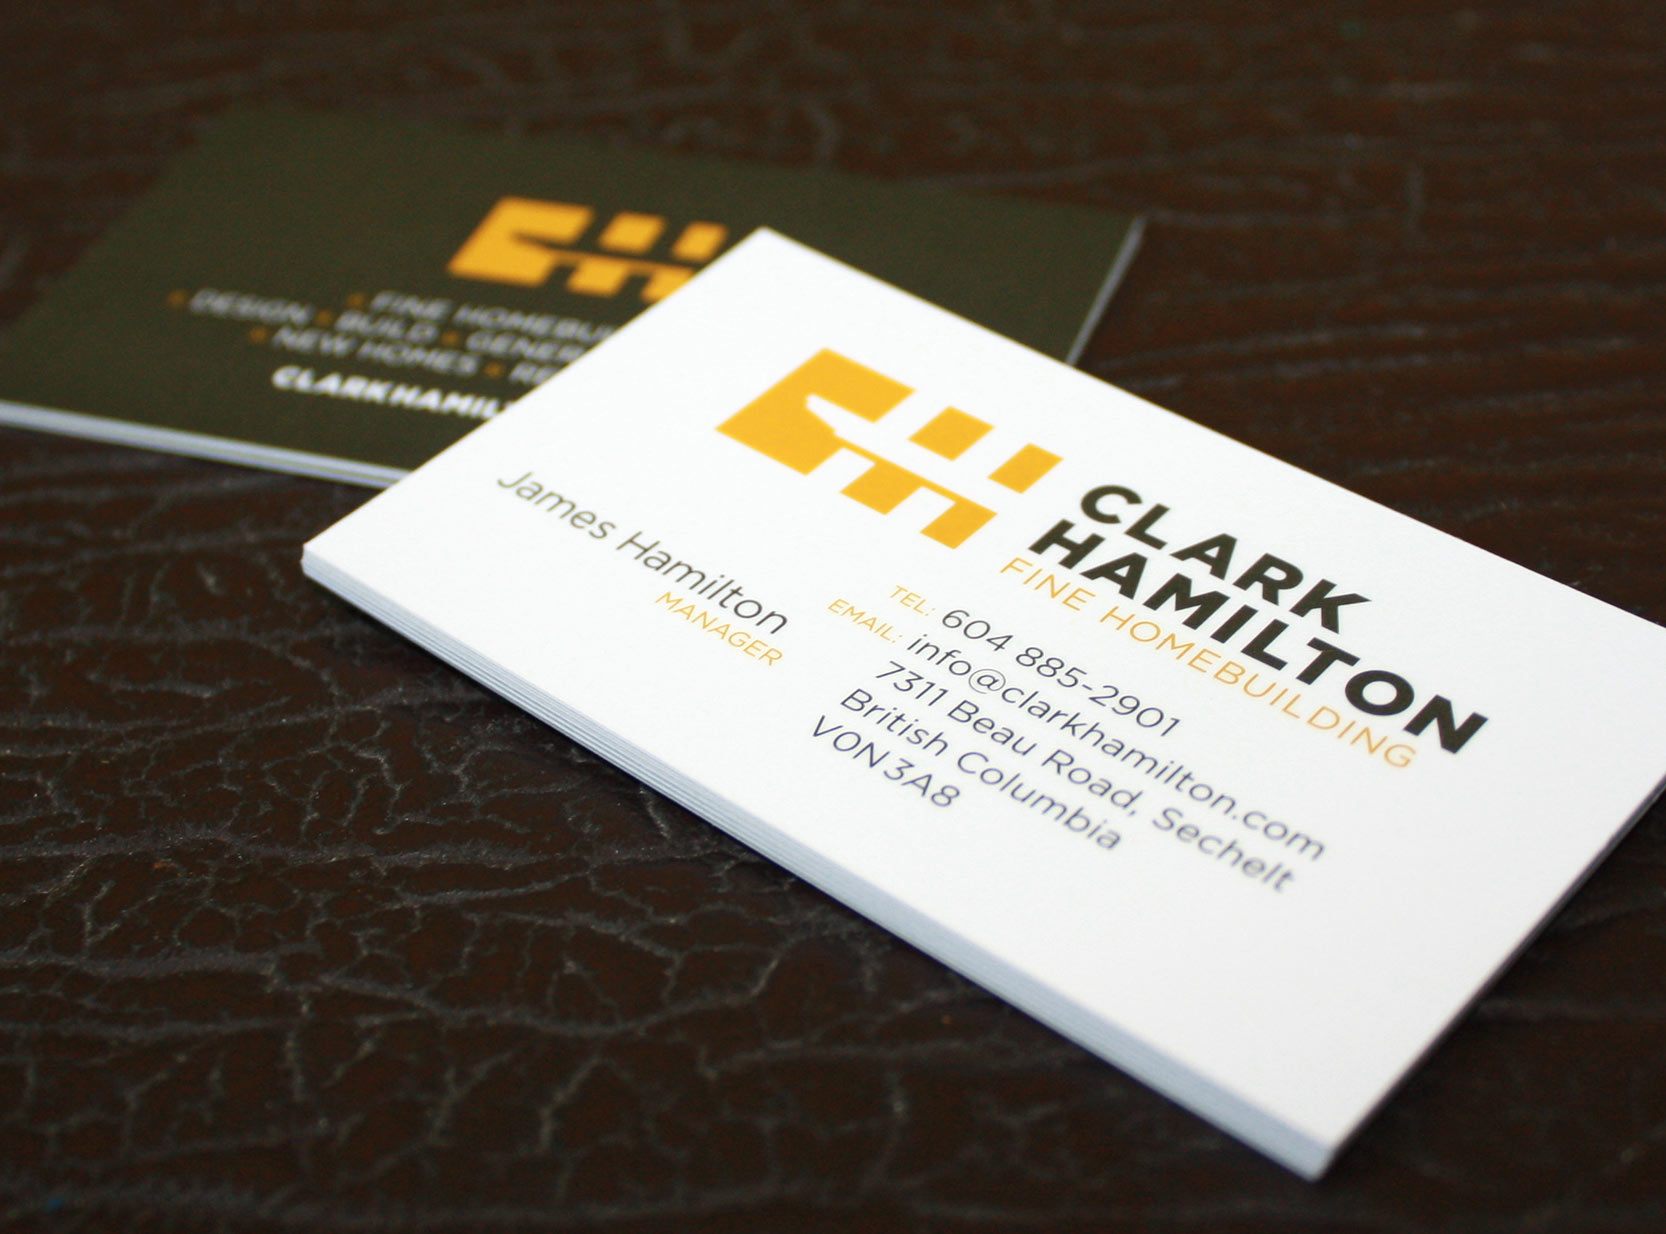 Business cards with a spot gloss varnish for James at Clark Hamilton Fine Homebuilding.